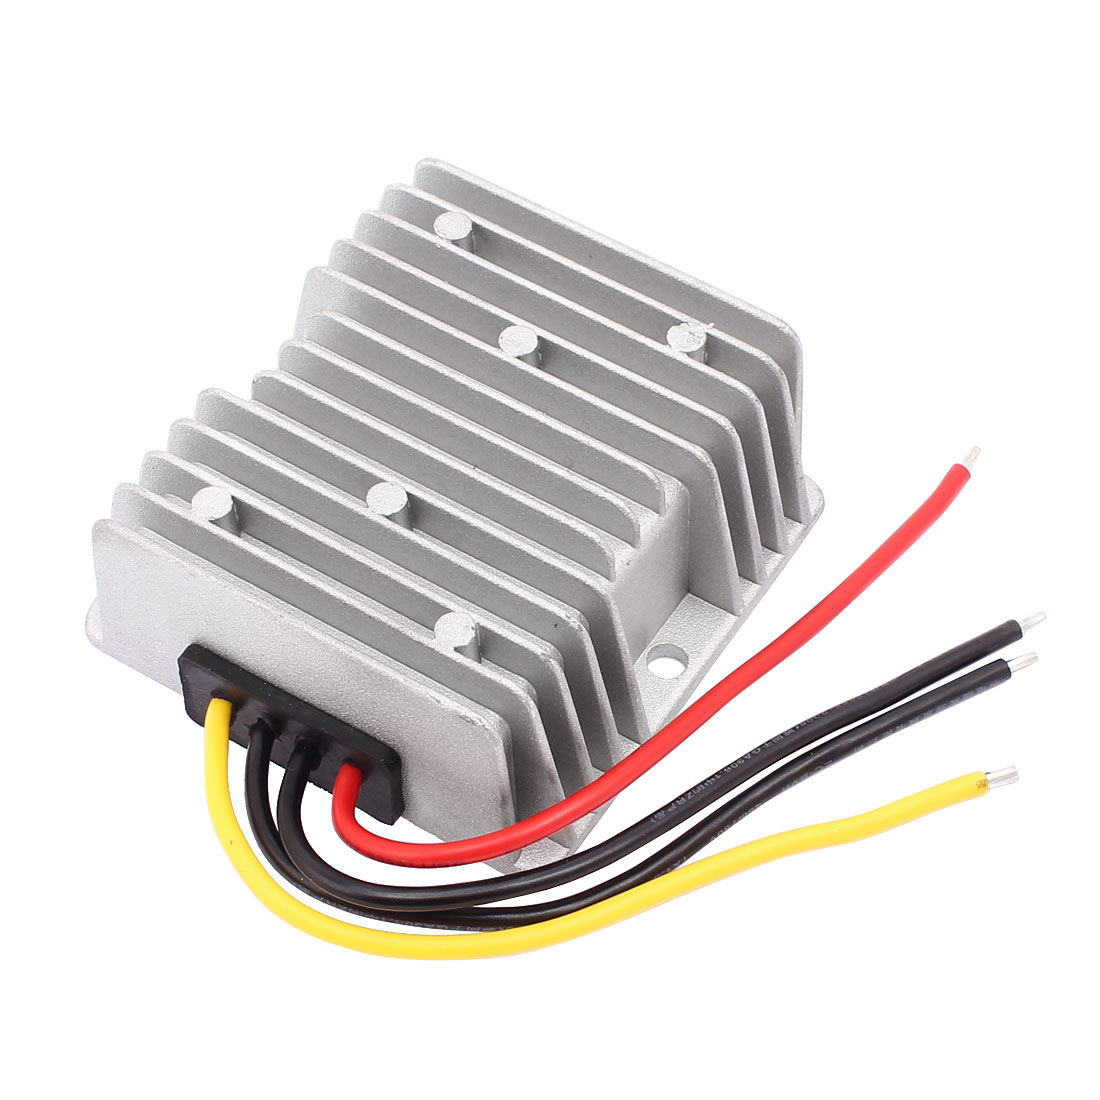 DC24V(18V~40V) Step-Down to DC13.8V 25A 345W Waterproof Power Converter Regulator Transformer